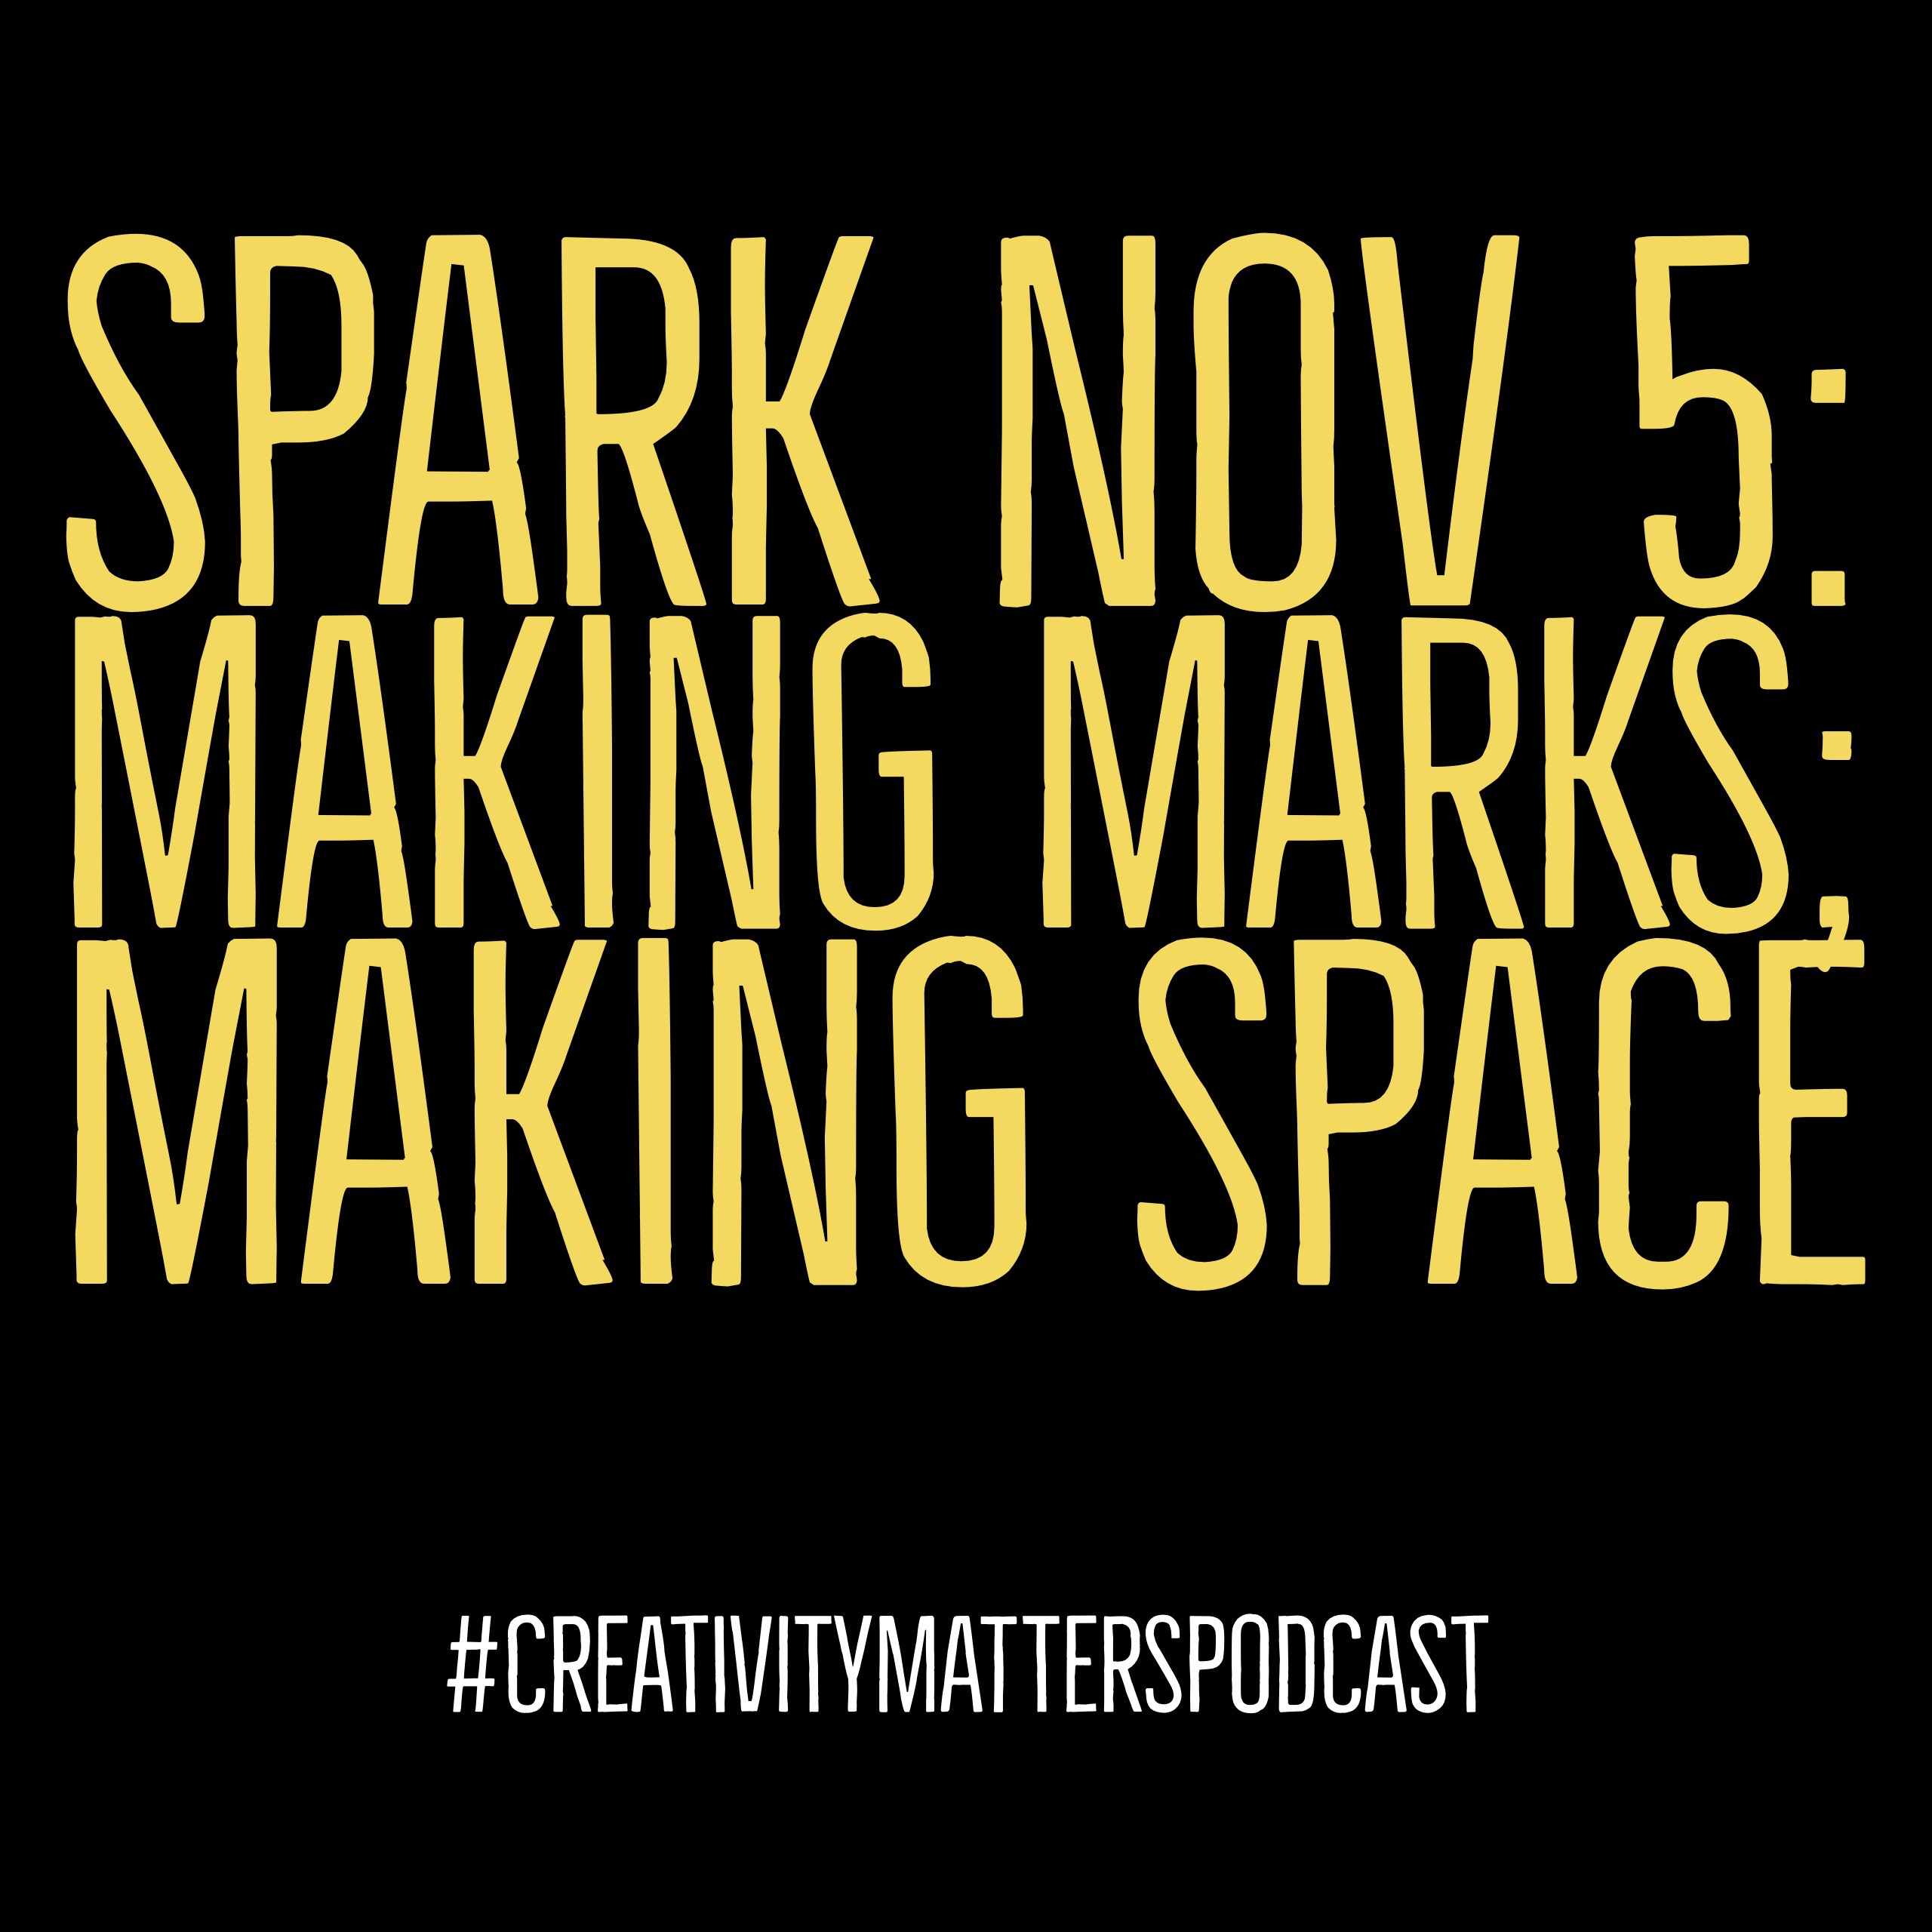 Spark 5: Making Marks